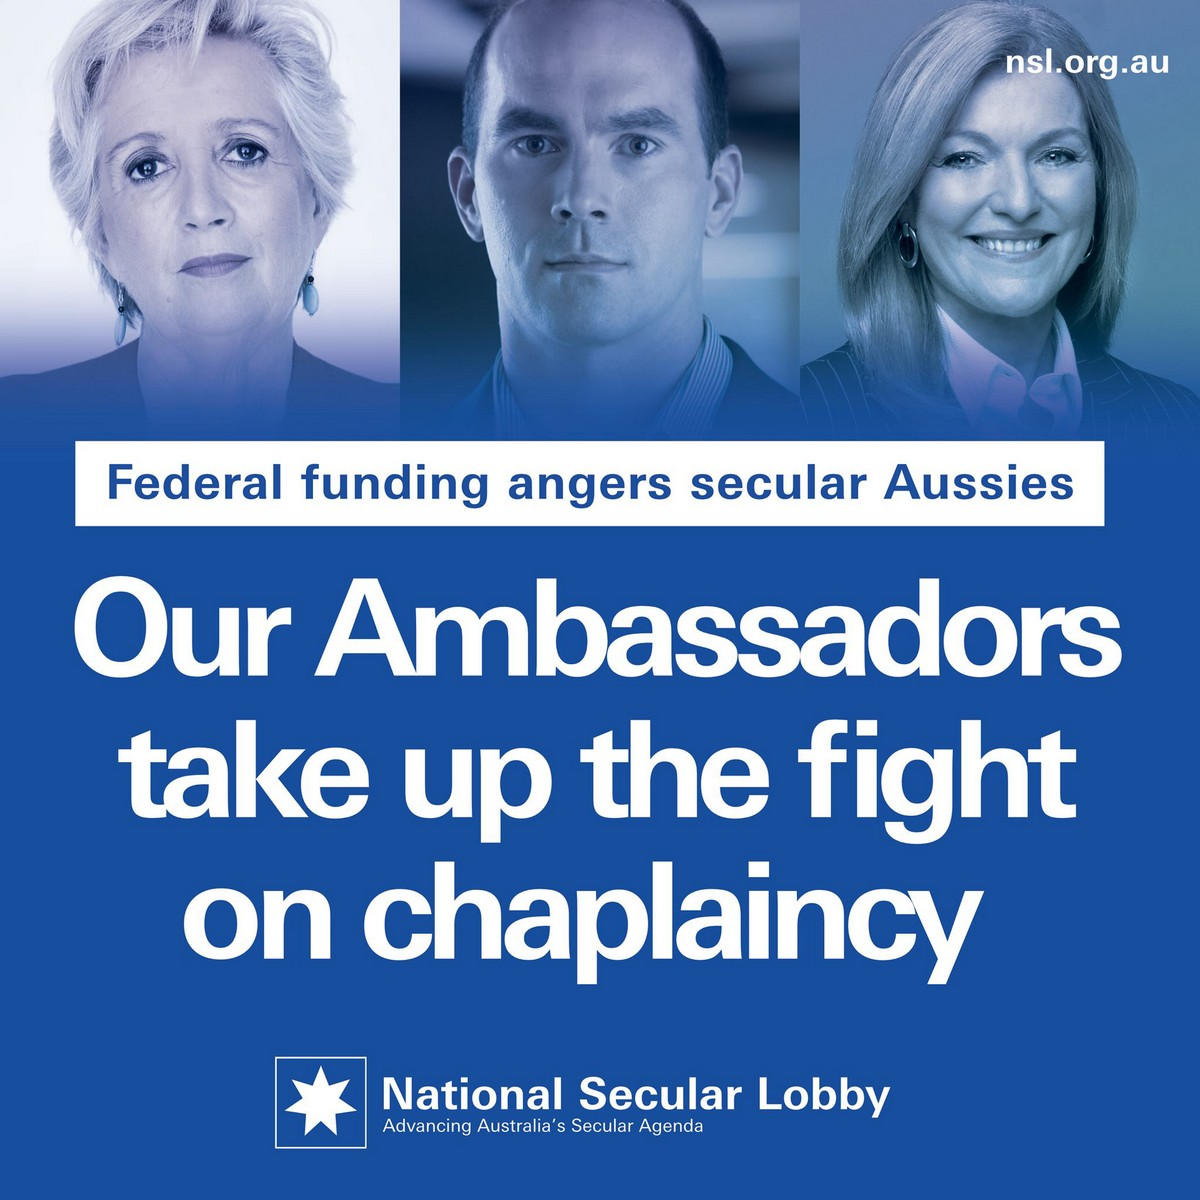 Our ambassadors take up the fight on chaplaincy